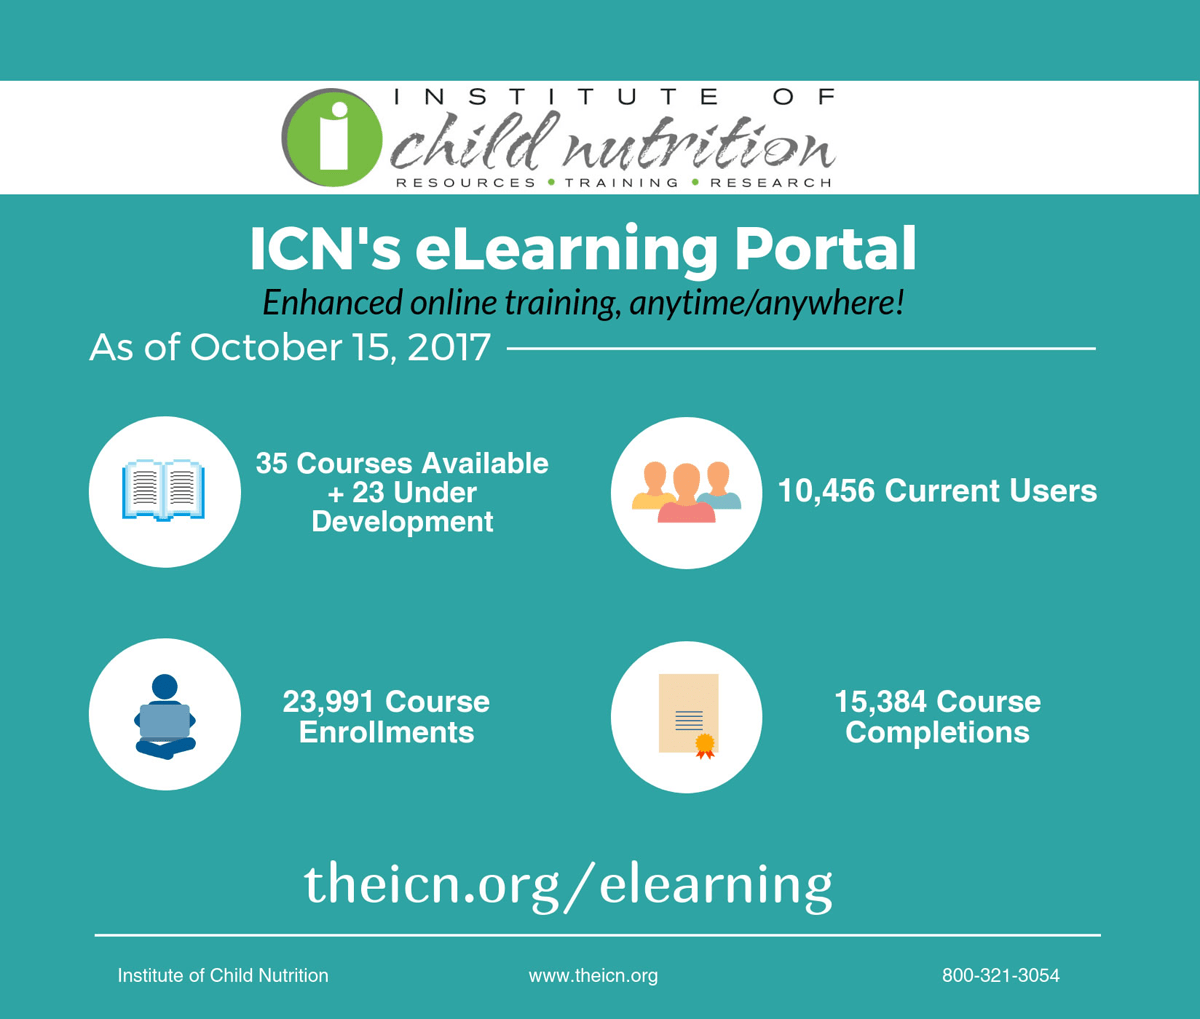 ICN e-learning Portal Infographic - October 2017